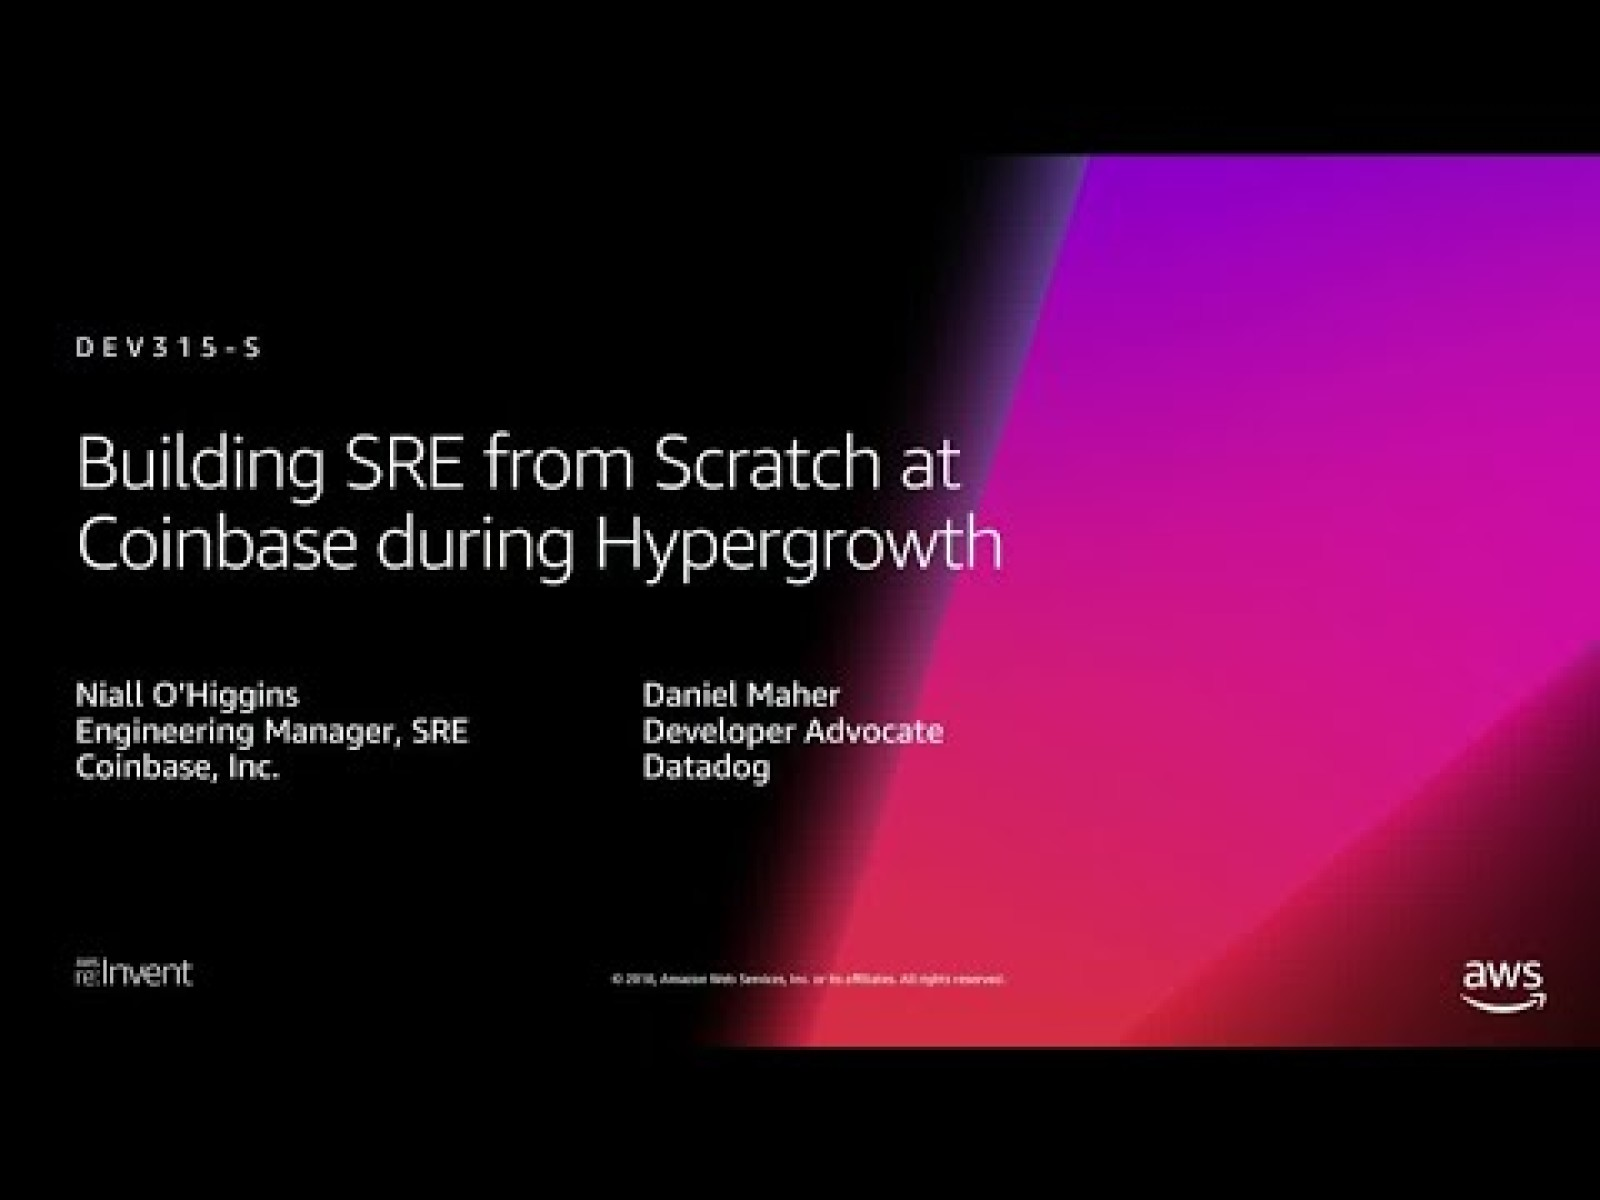 Building SRE from Scratch at Coinbase during Hypergrowth